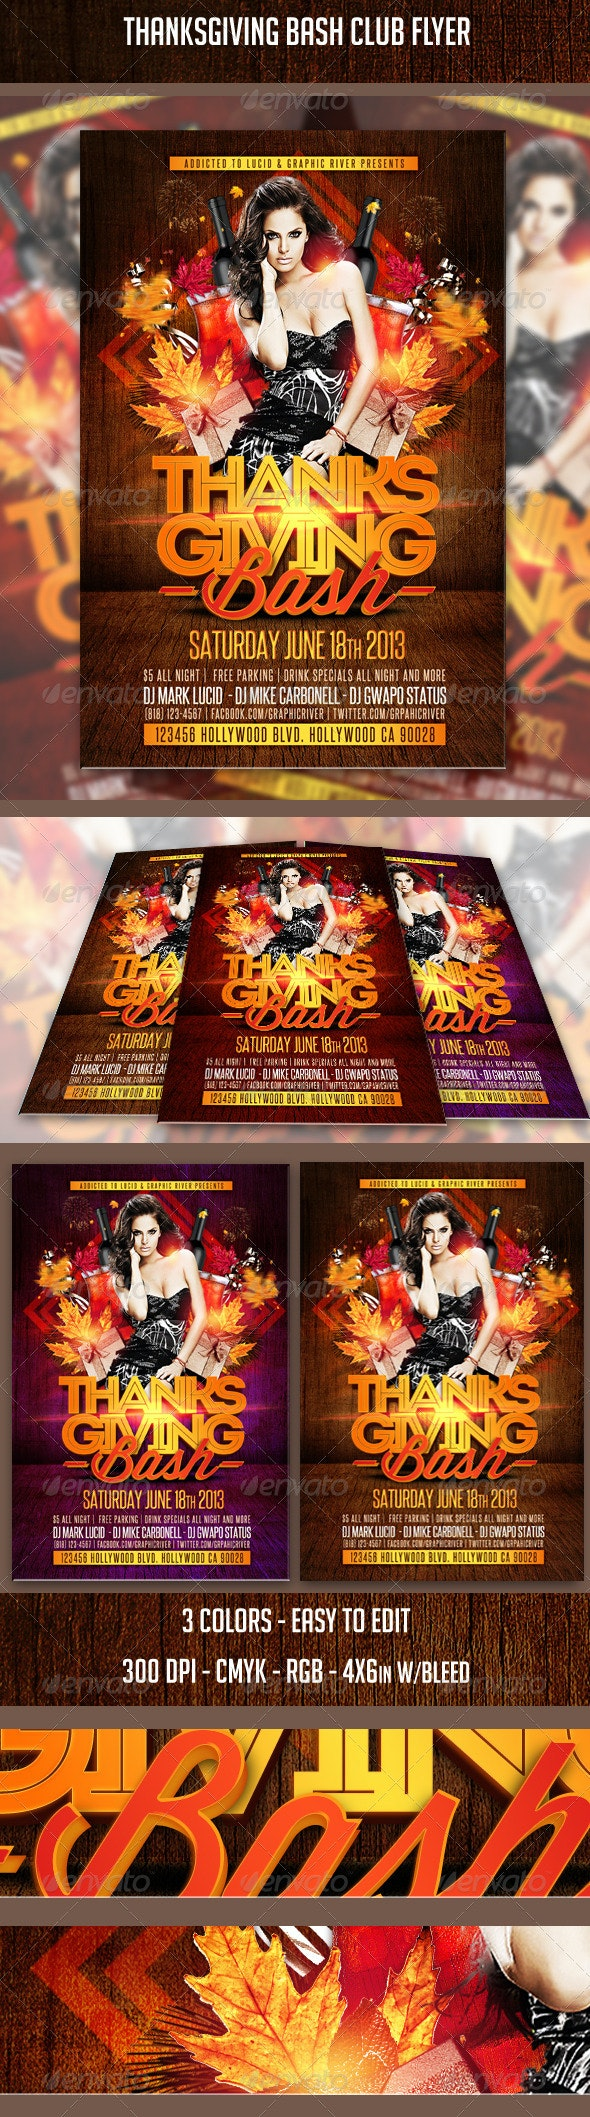 Thanksgiving Bash Club Flyer - Clubs & Parties Events